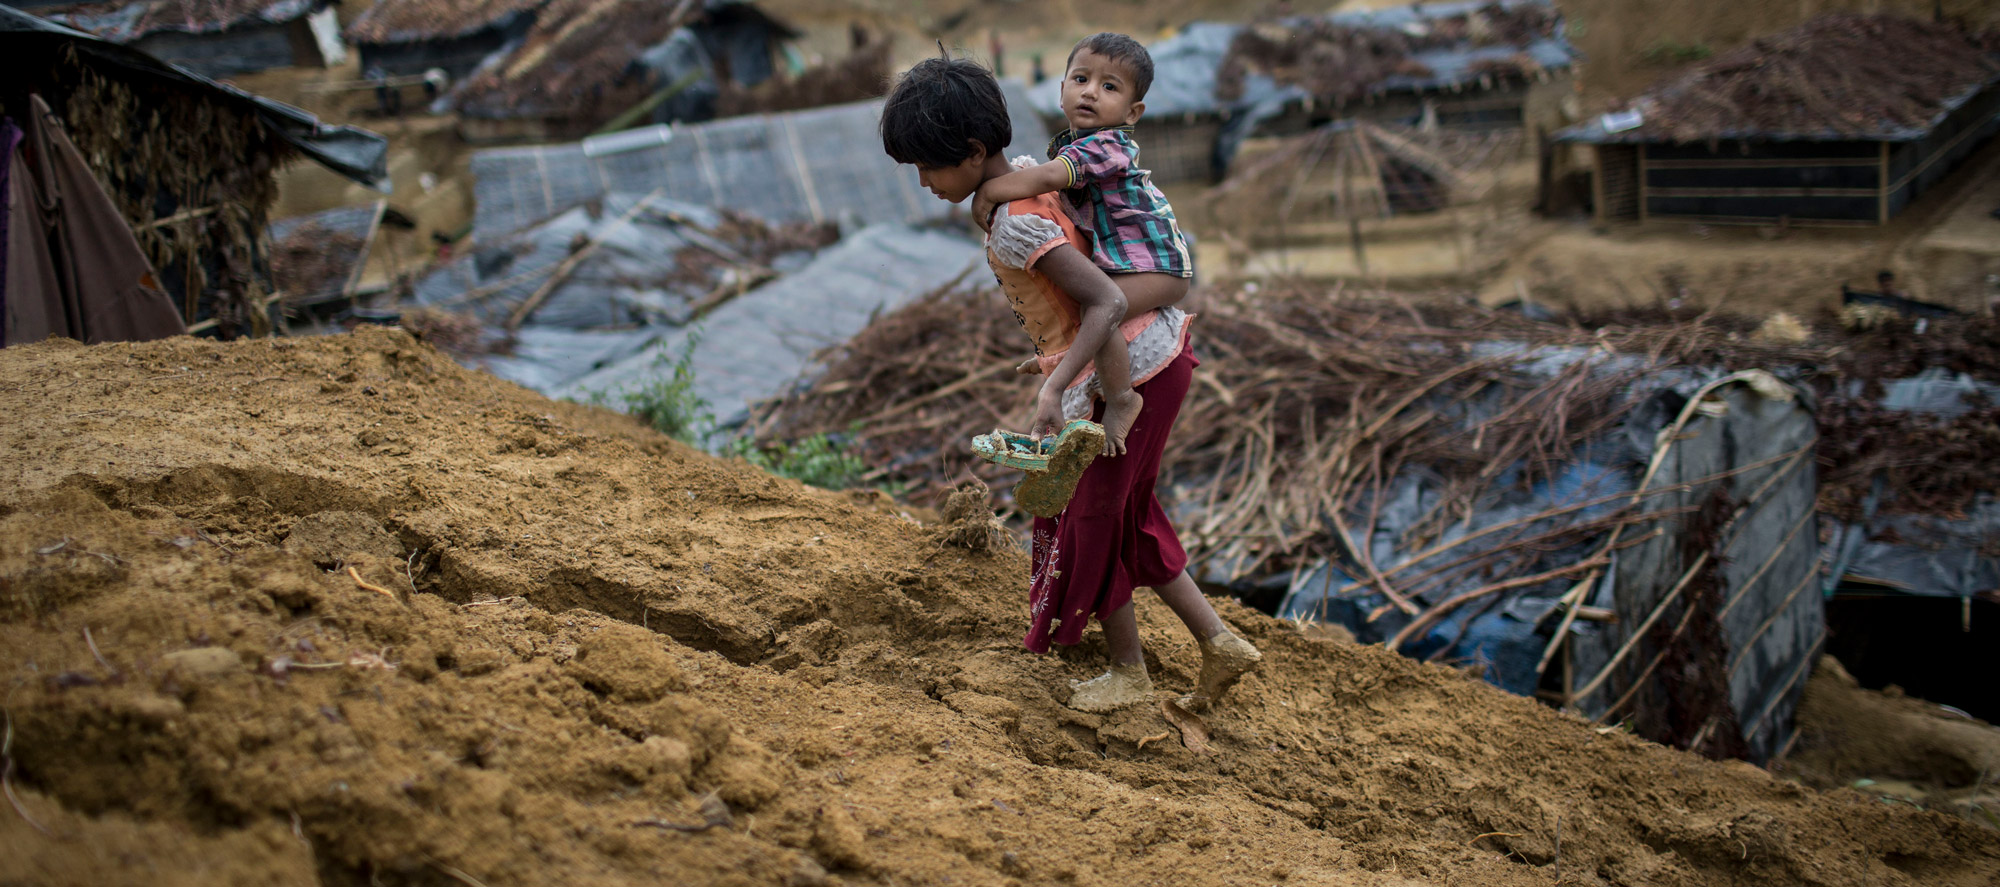 Rohingya Refugees in Bangladesh. Photo by Probal Rashid/LightRocket via Getty Images.